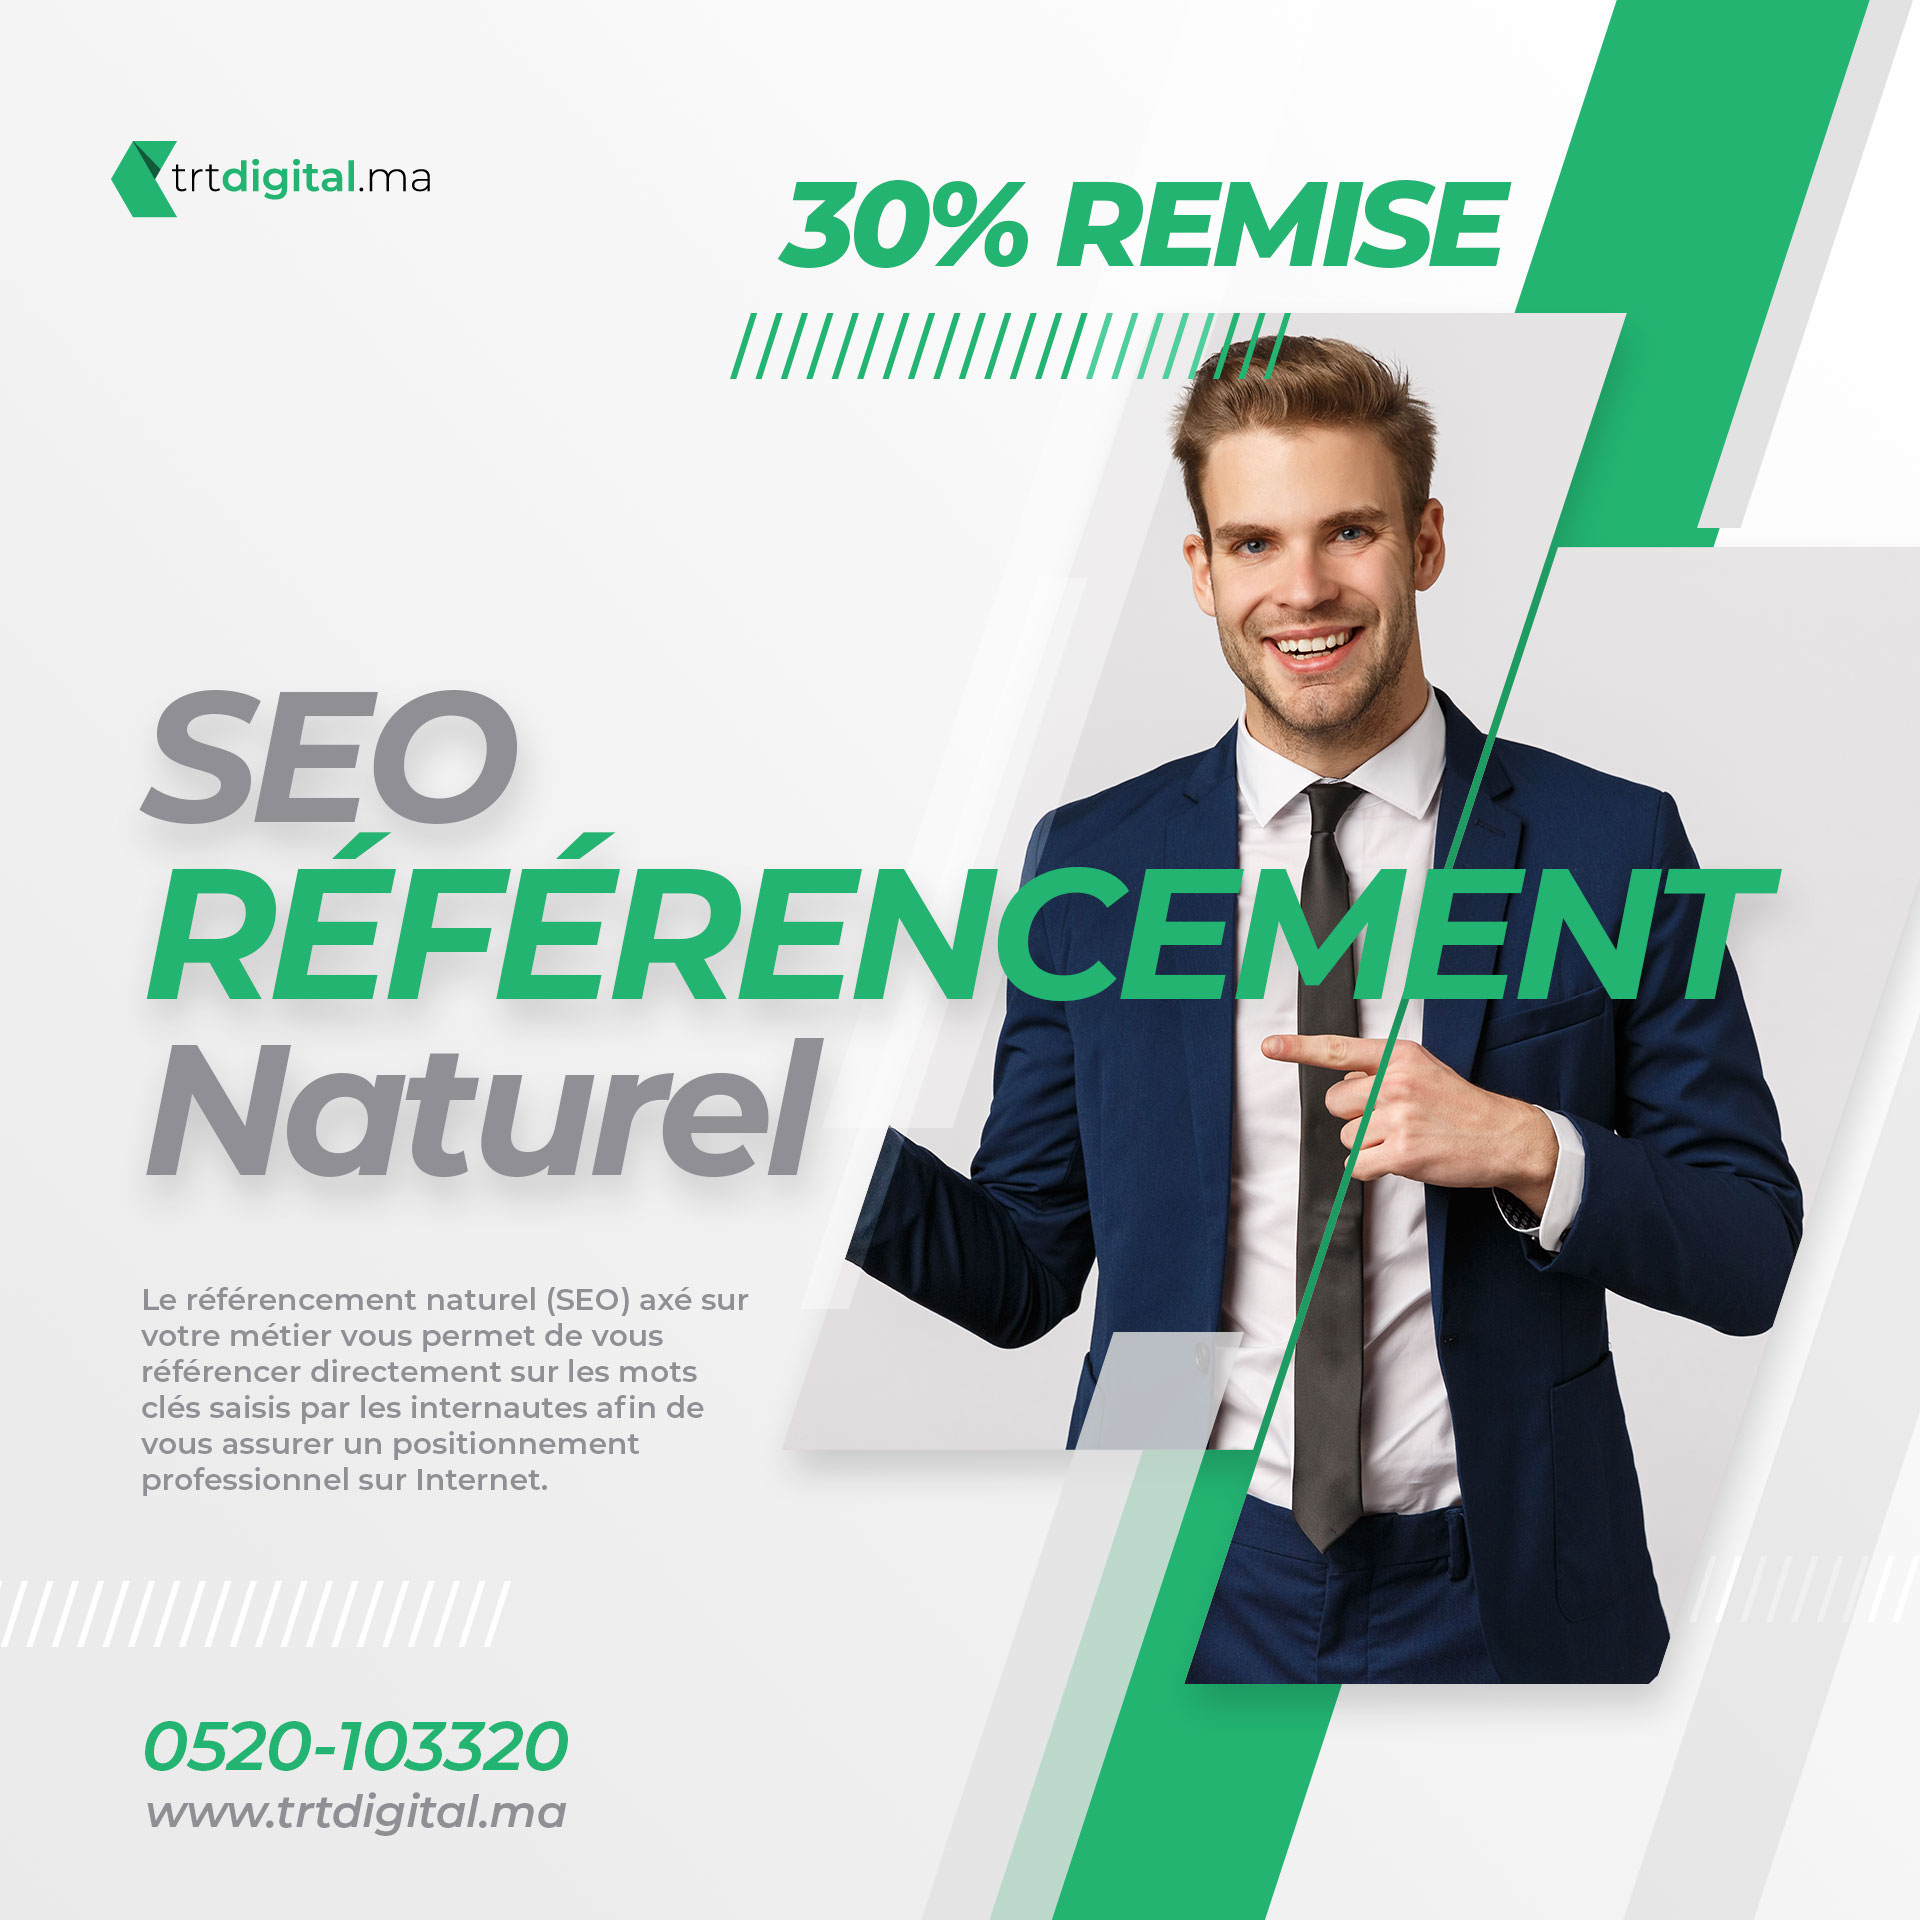 seo referencement naturel trt digital ads 2 - Nos Réalisation Communication Digitale Maroc